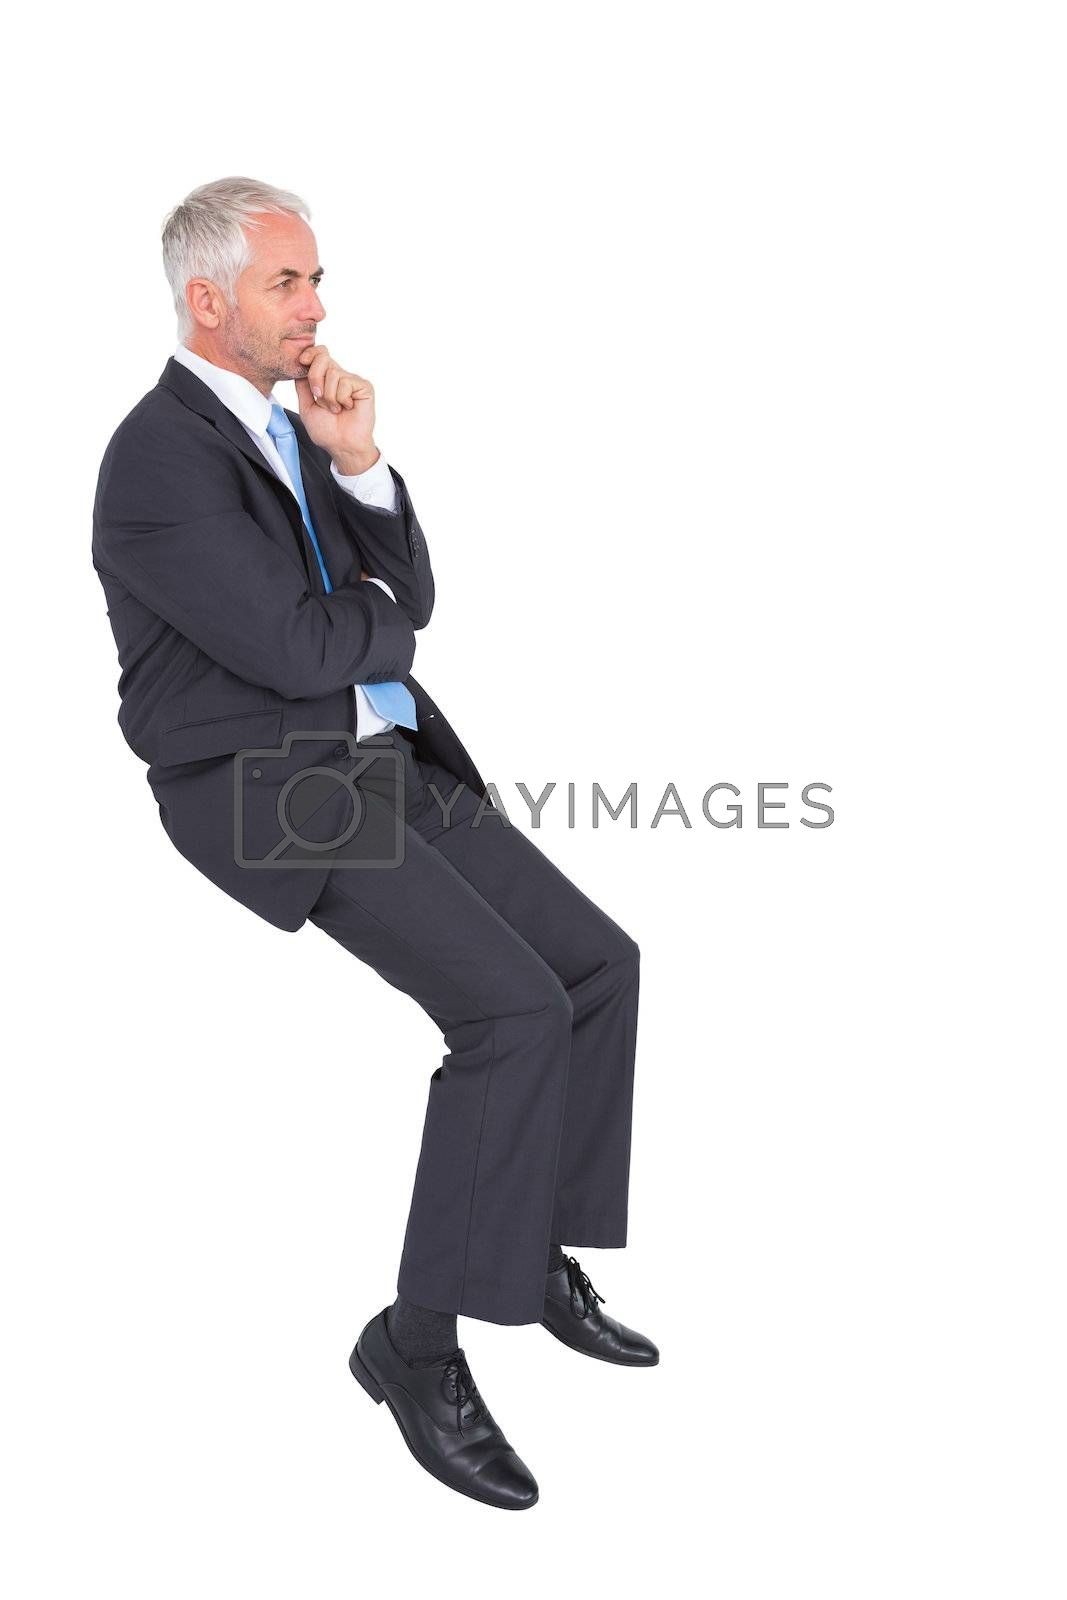 Businessman looking up while thinking by Wavebreakmedia